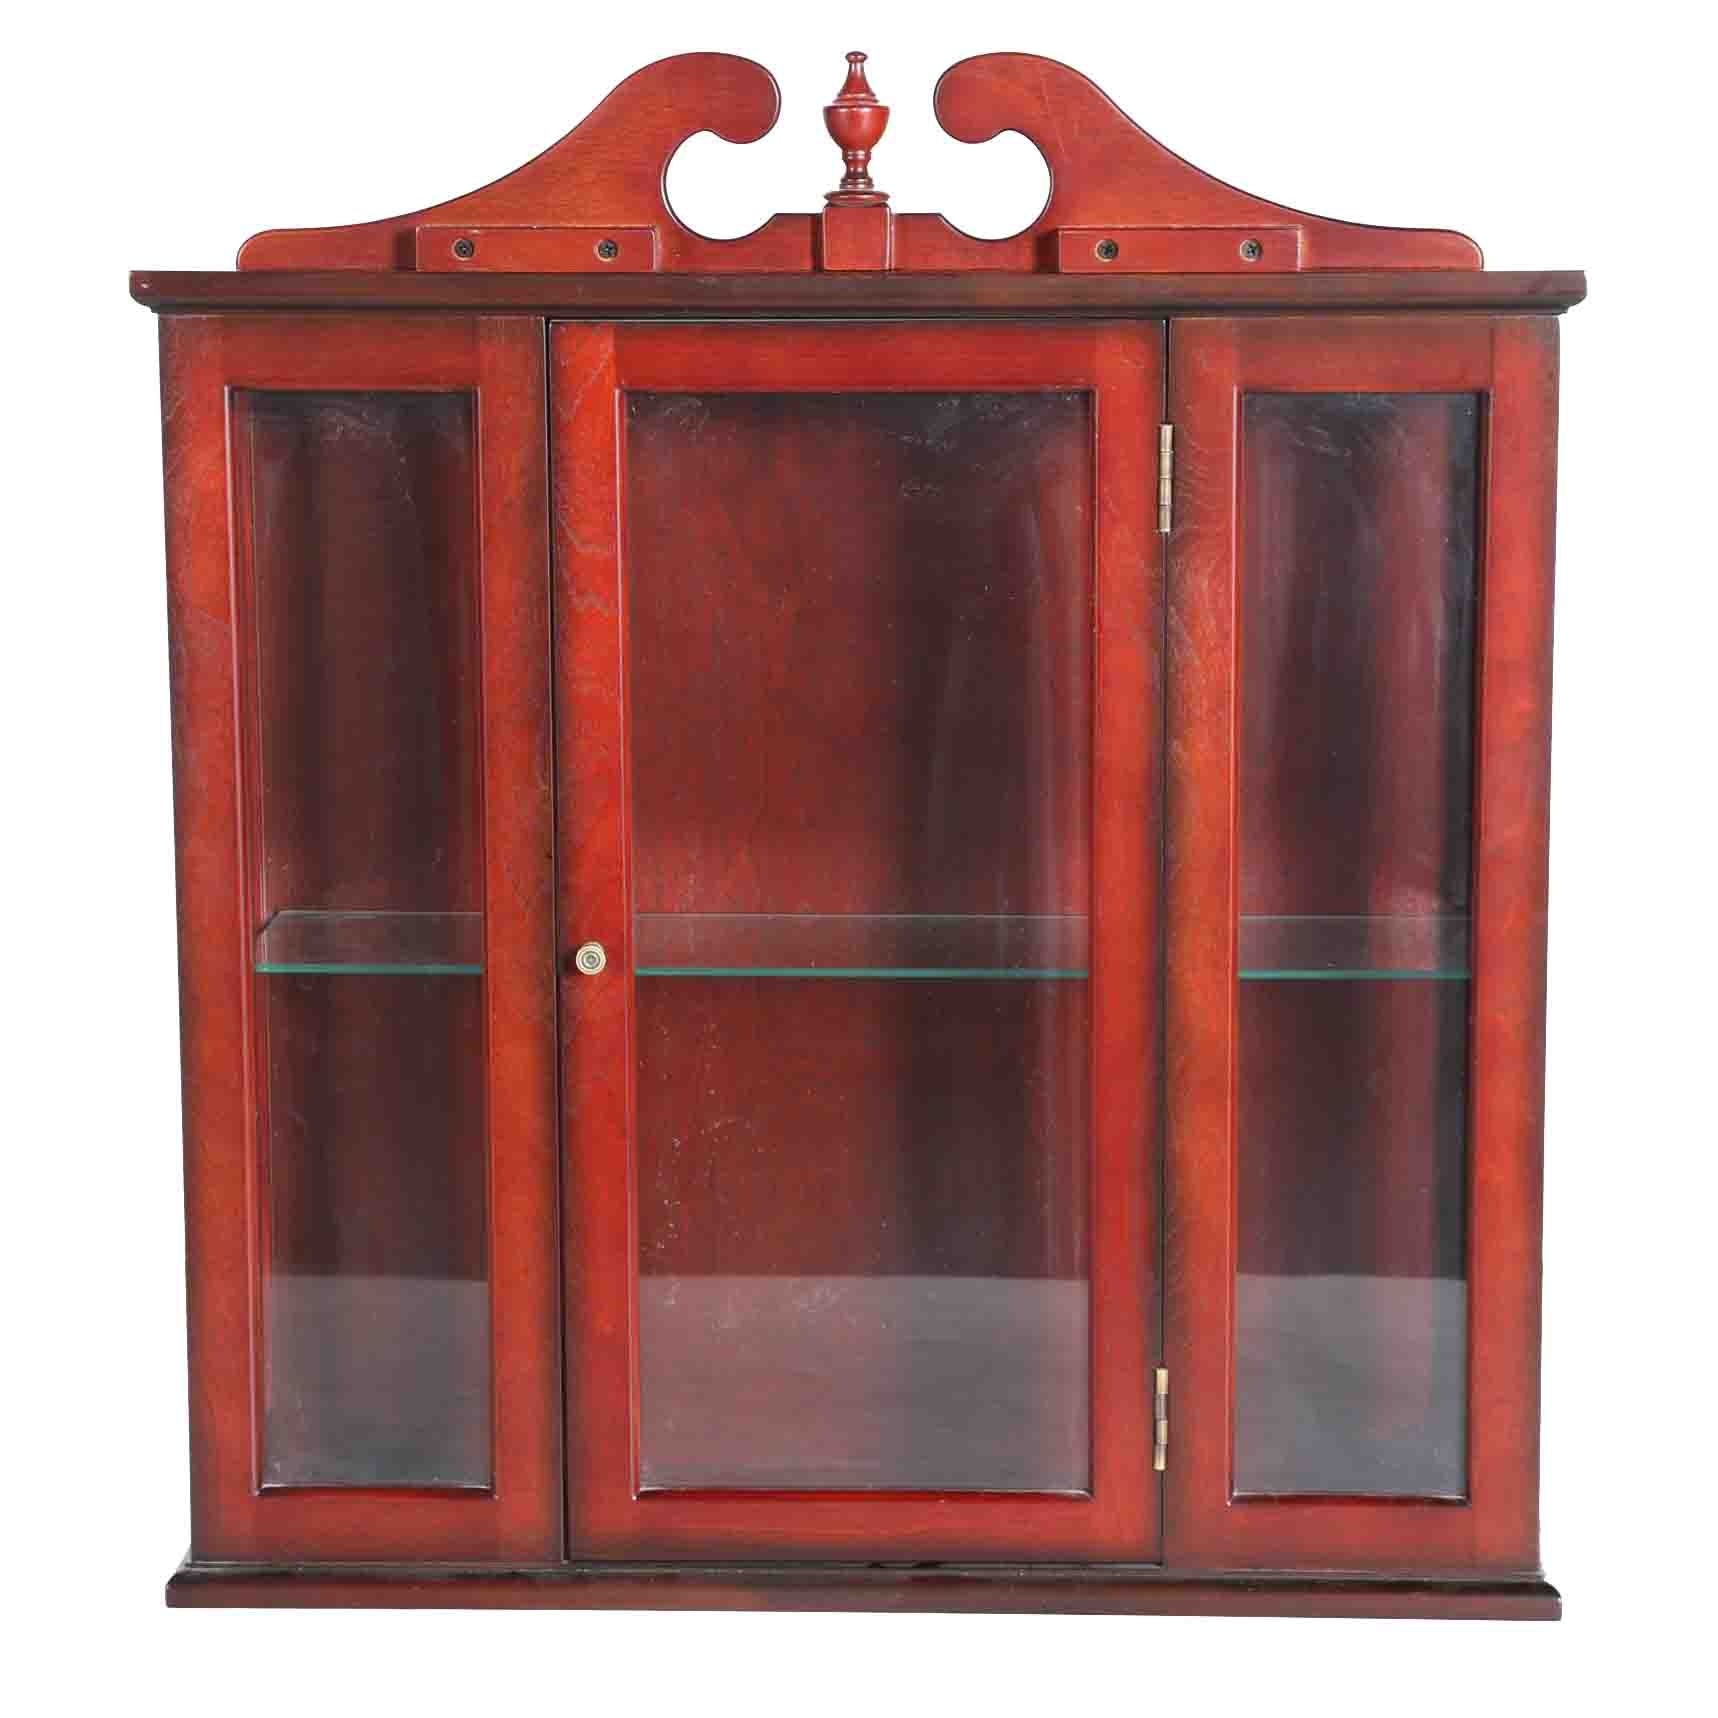 Superior Hanging China Cabinet #15 - Bombay Company Hanging Wall Cabinet ...